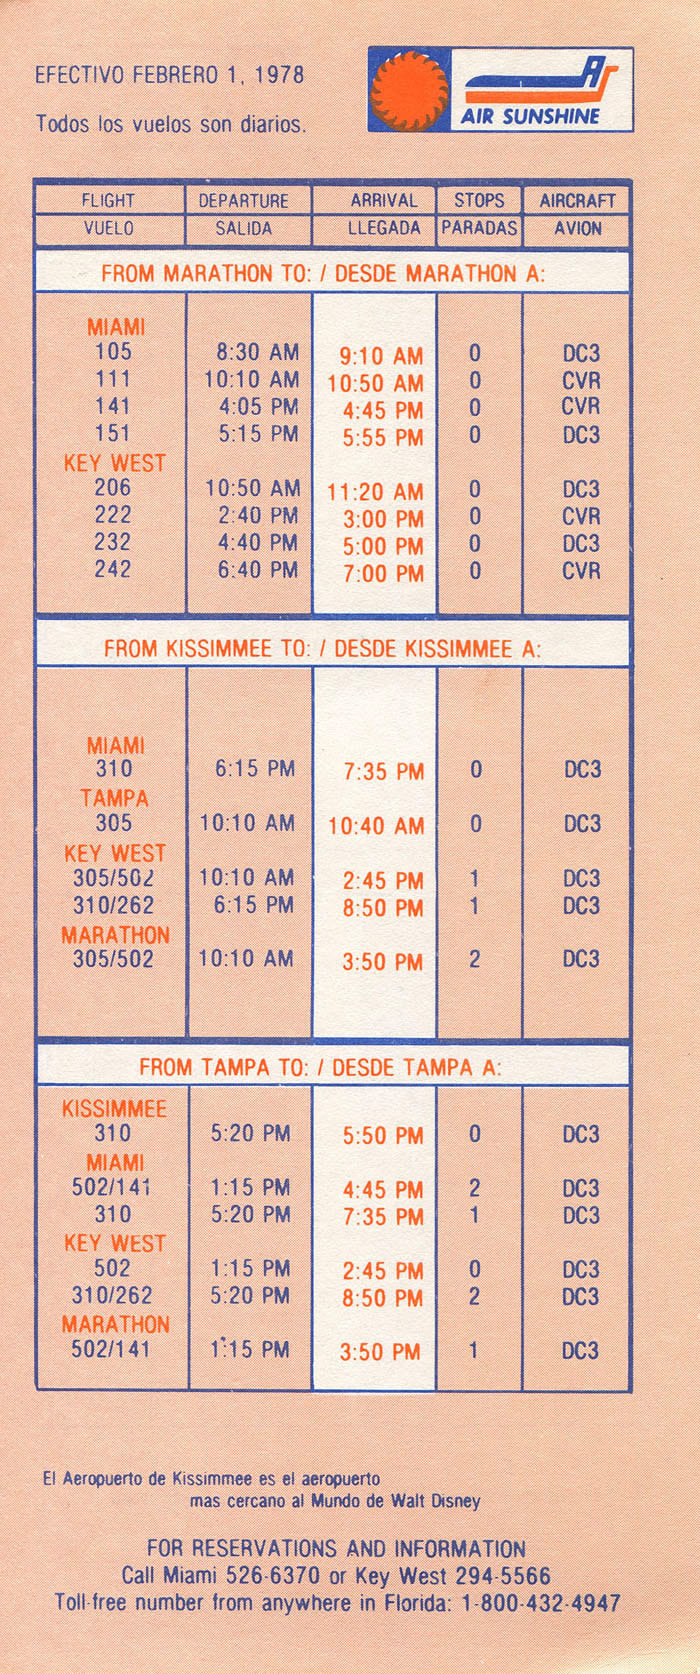 Air Sunshine timetable 1978